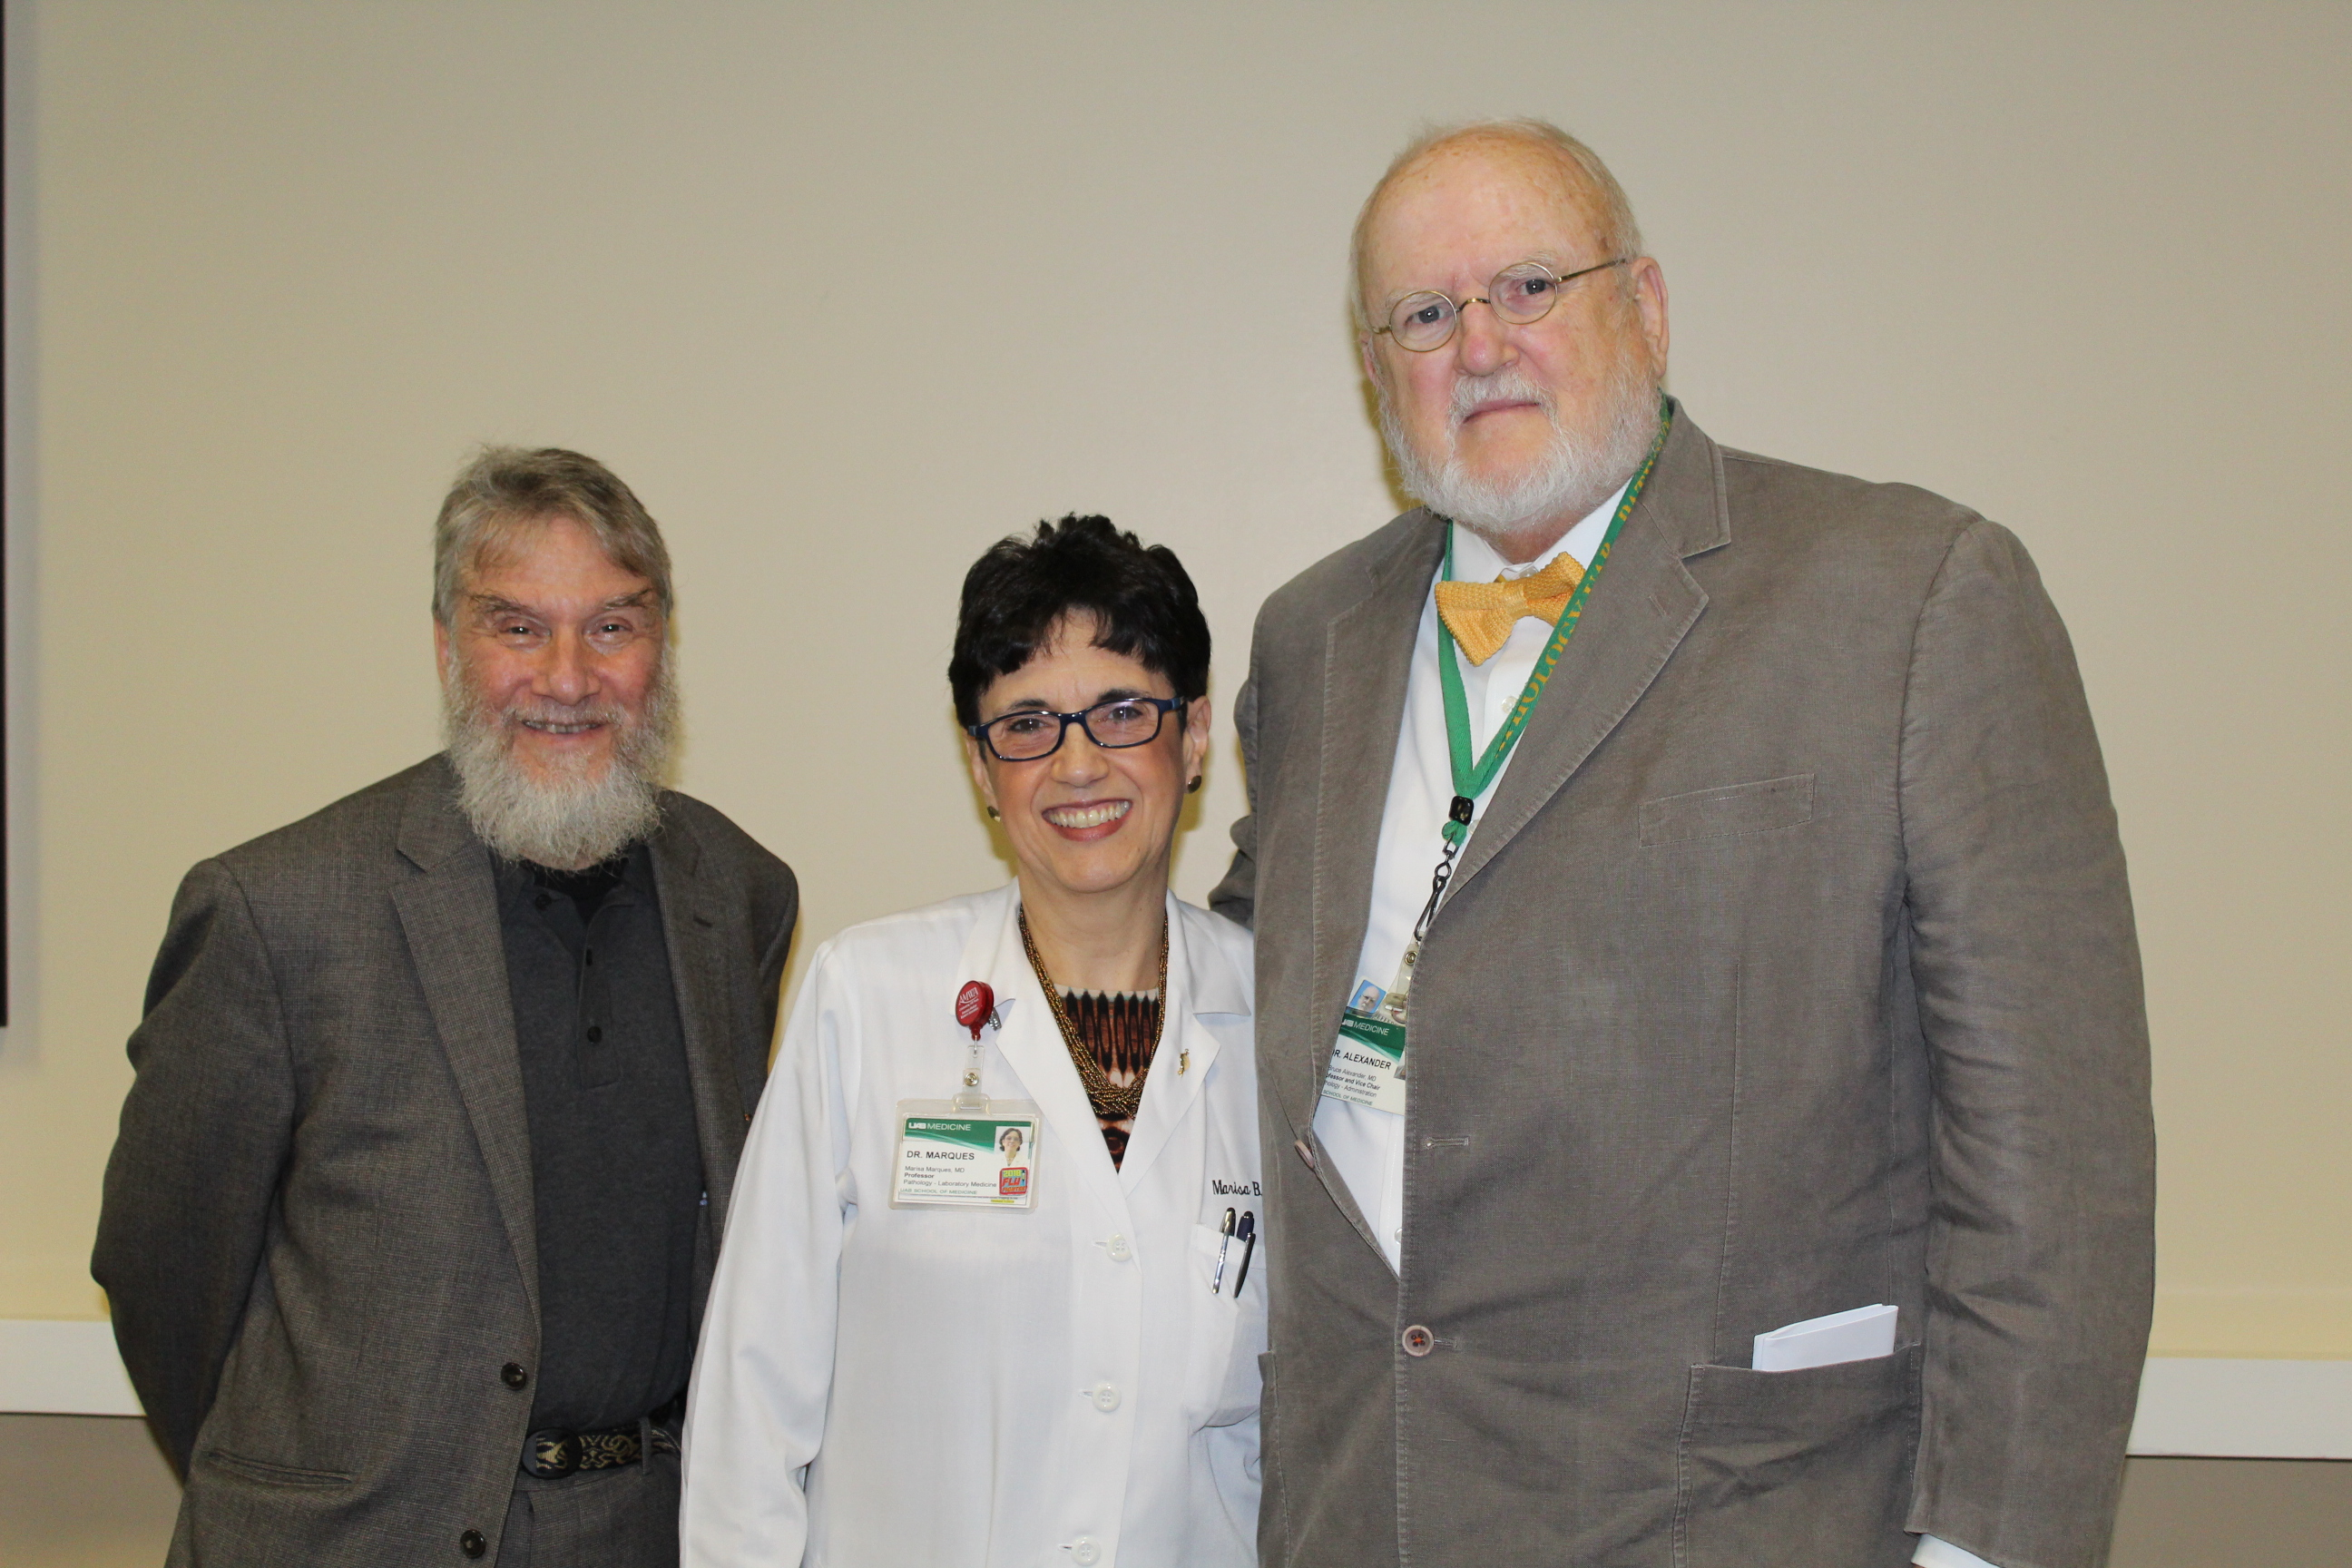 UAB - School of Medicine - Pathology - Alexander Lecture Features